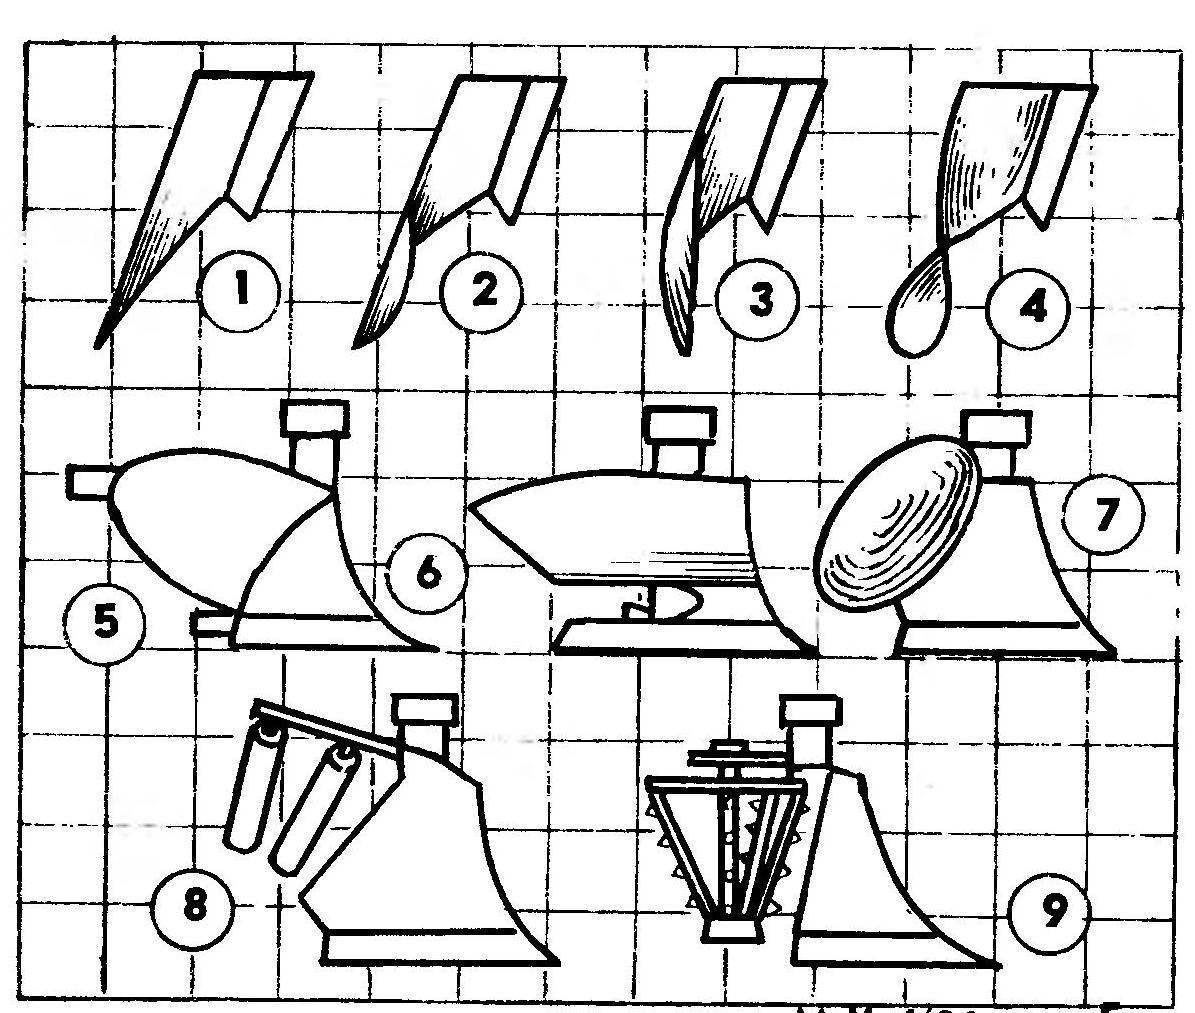 R and p. 2. Varieties jointers-dump surfaces and plough bodies